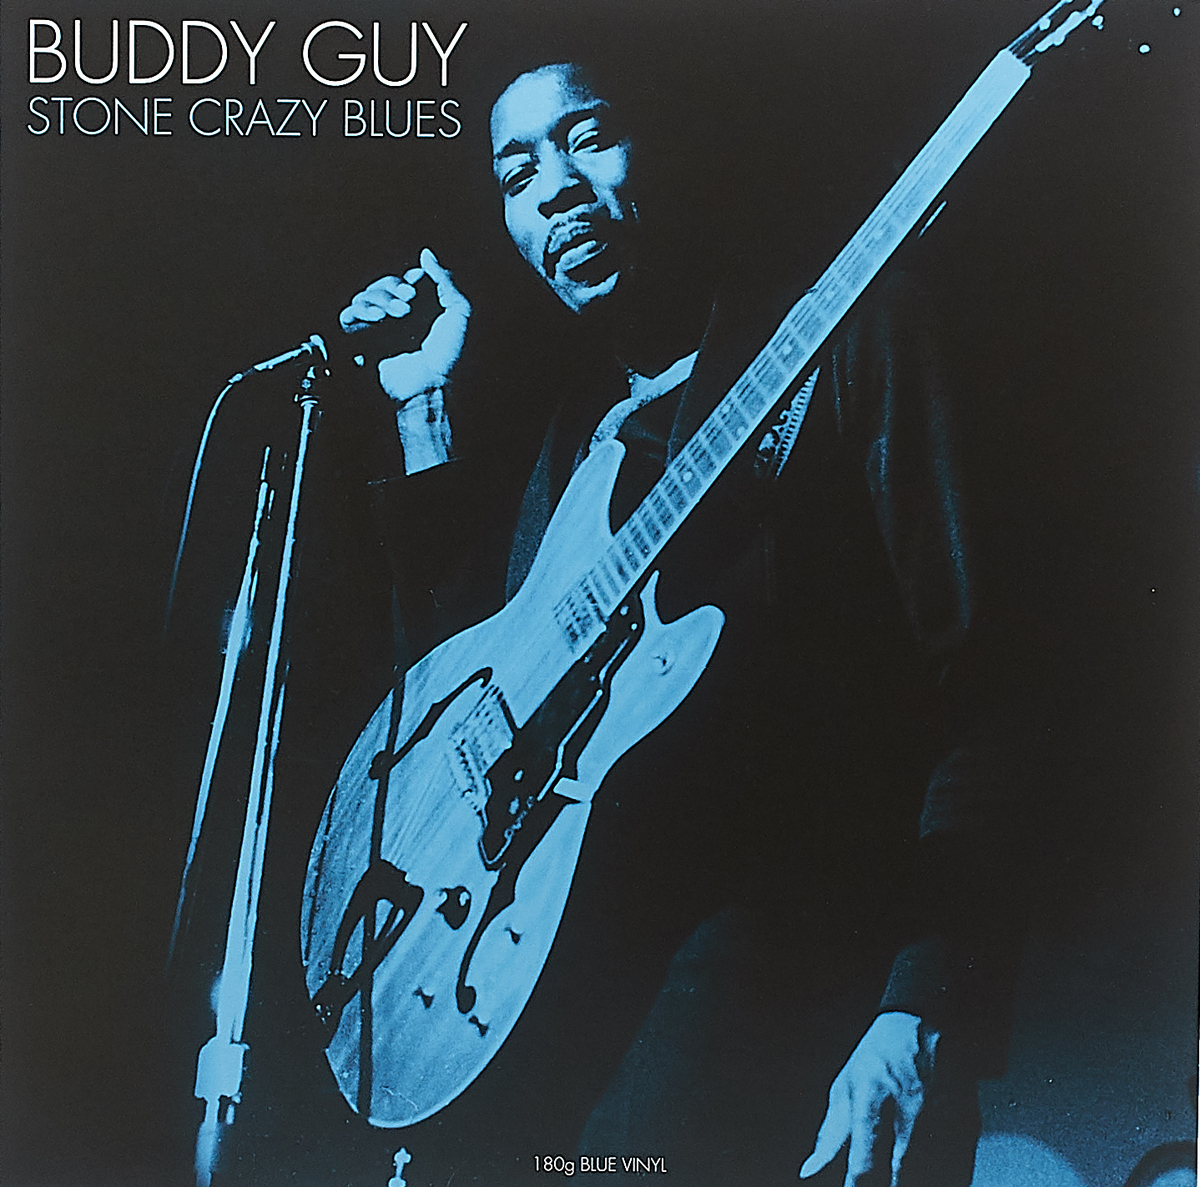 Бадди Гай Buddy Guy. Stone Crazy Blues (LP) joseph thomas le fanu guy deverell 1 гай деверелл 1 на английском языке